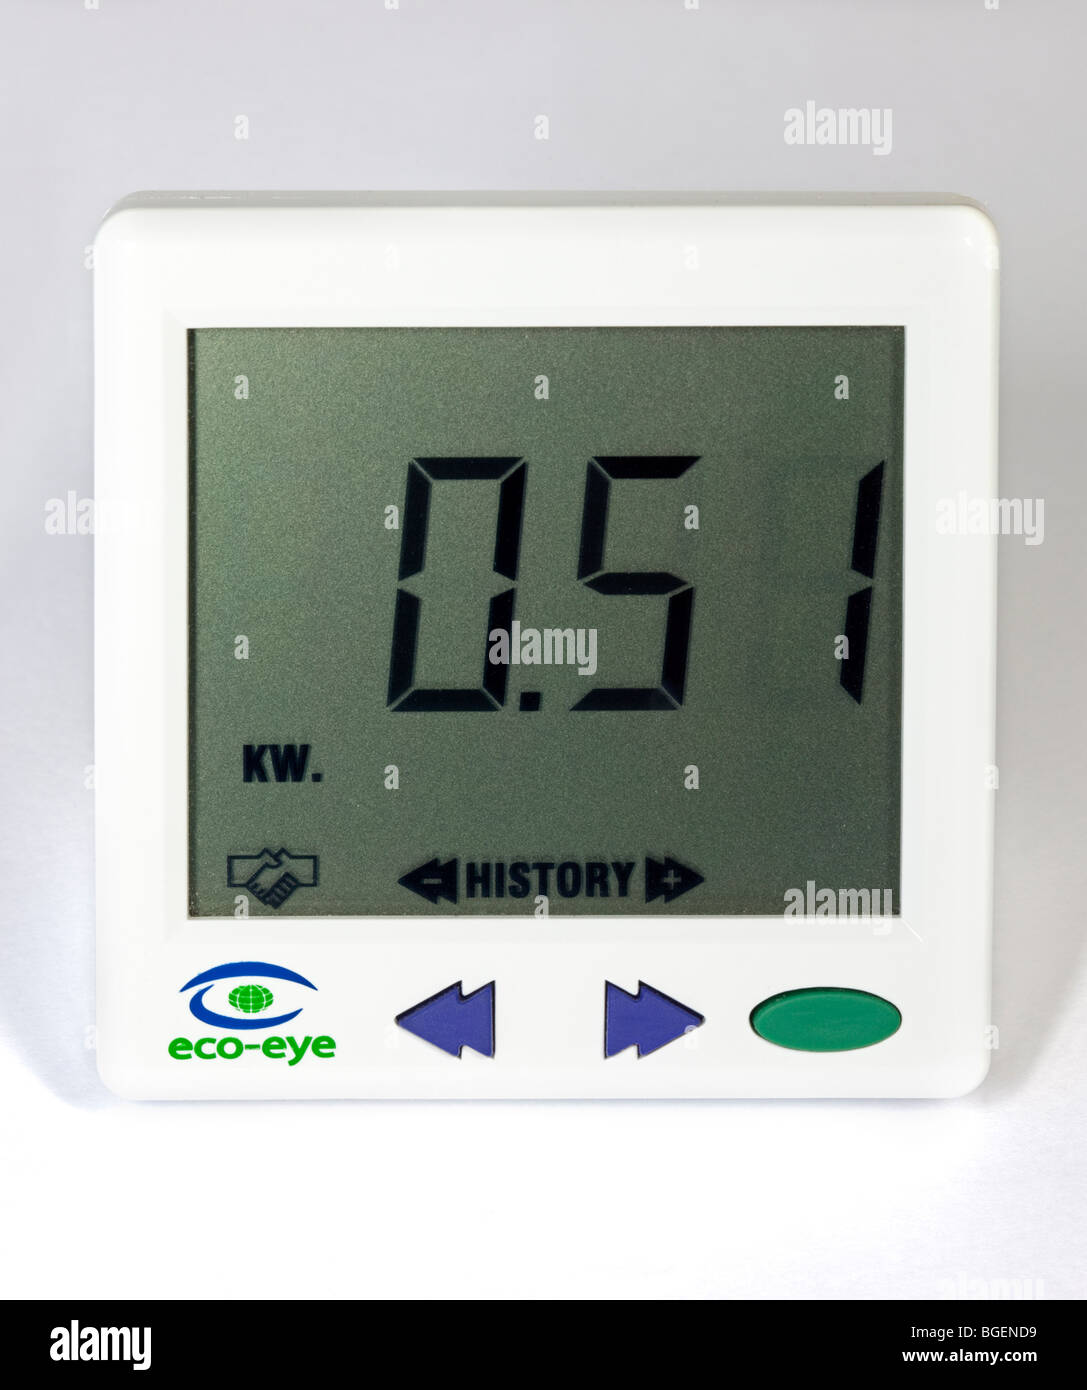 Electricity Power Usage Monitor - Stock Image